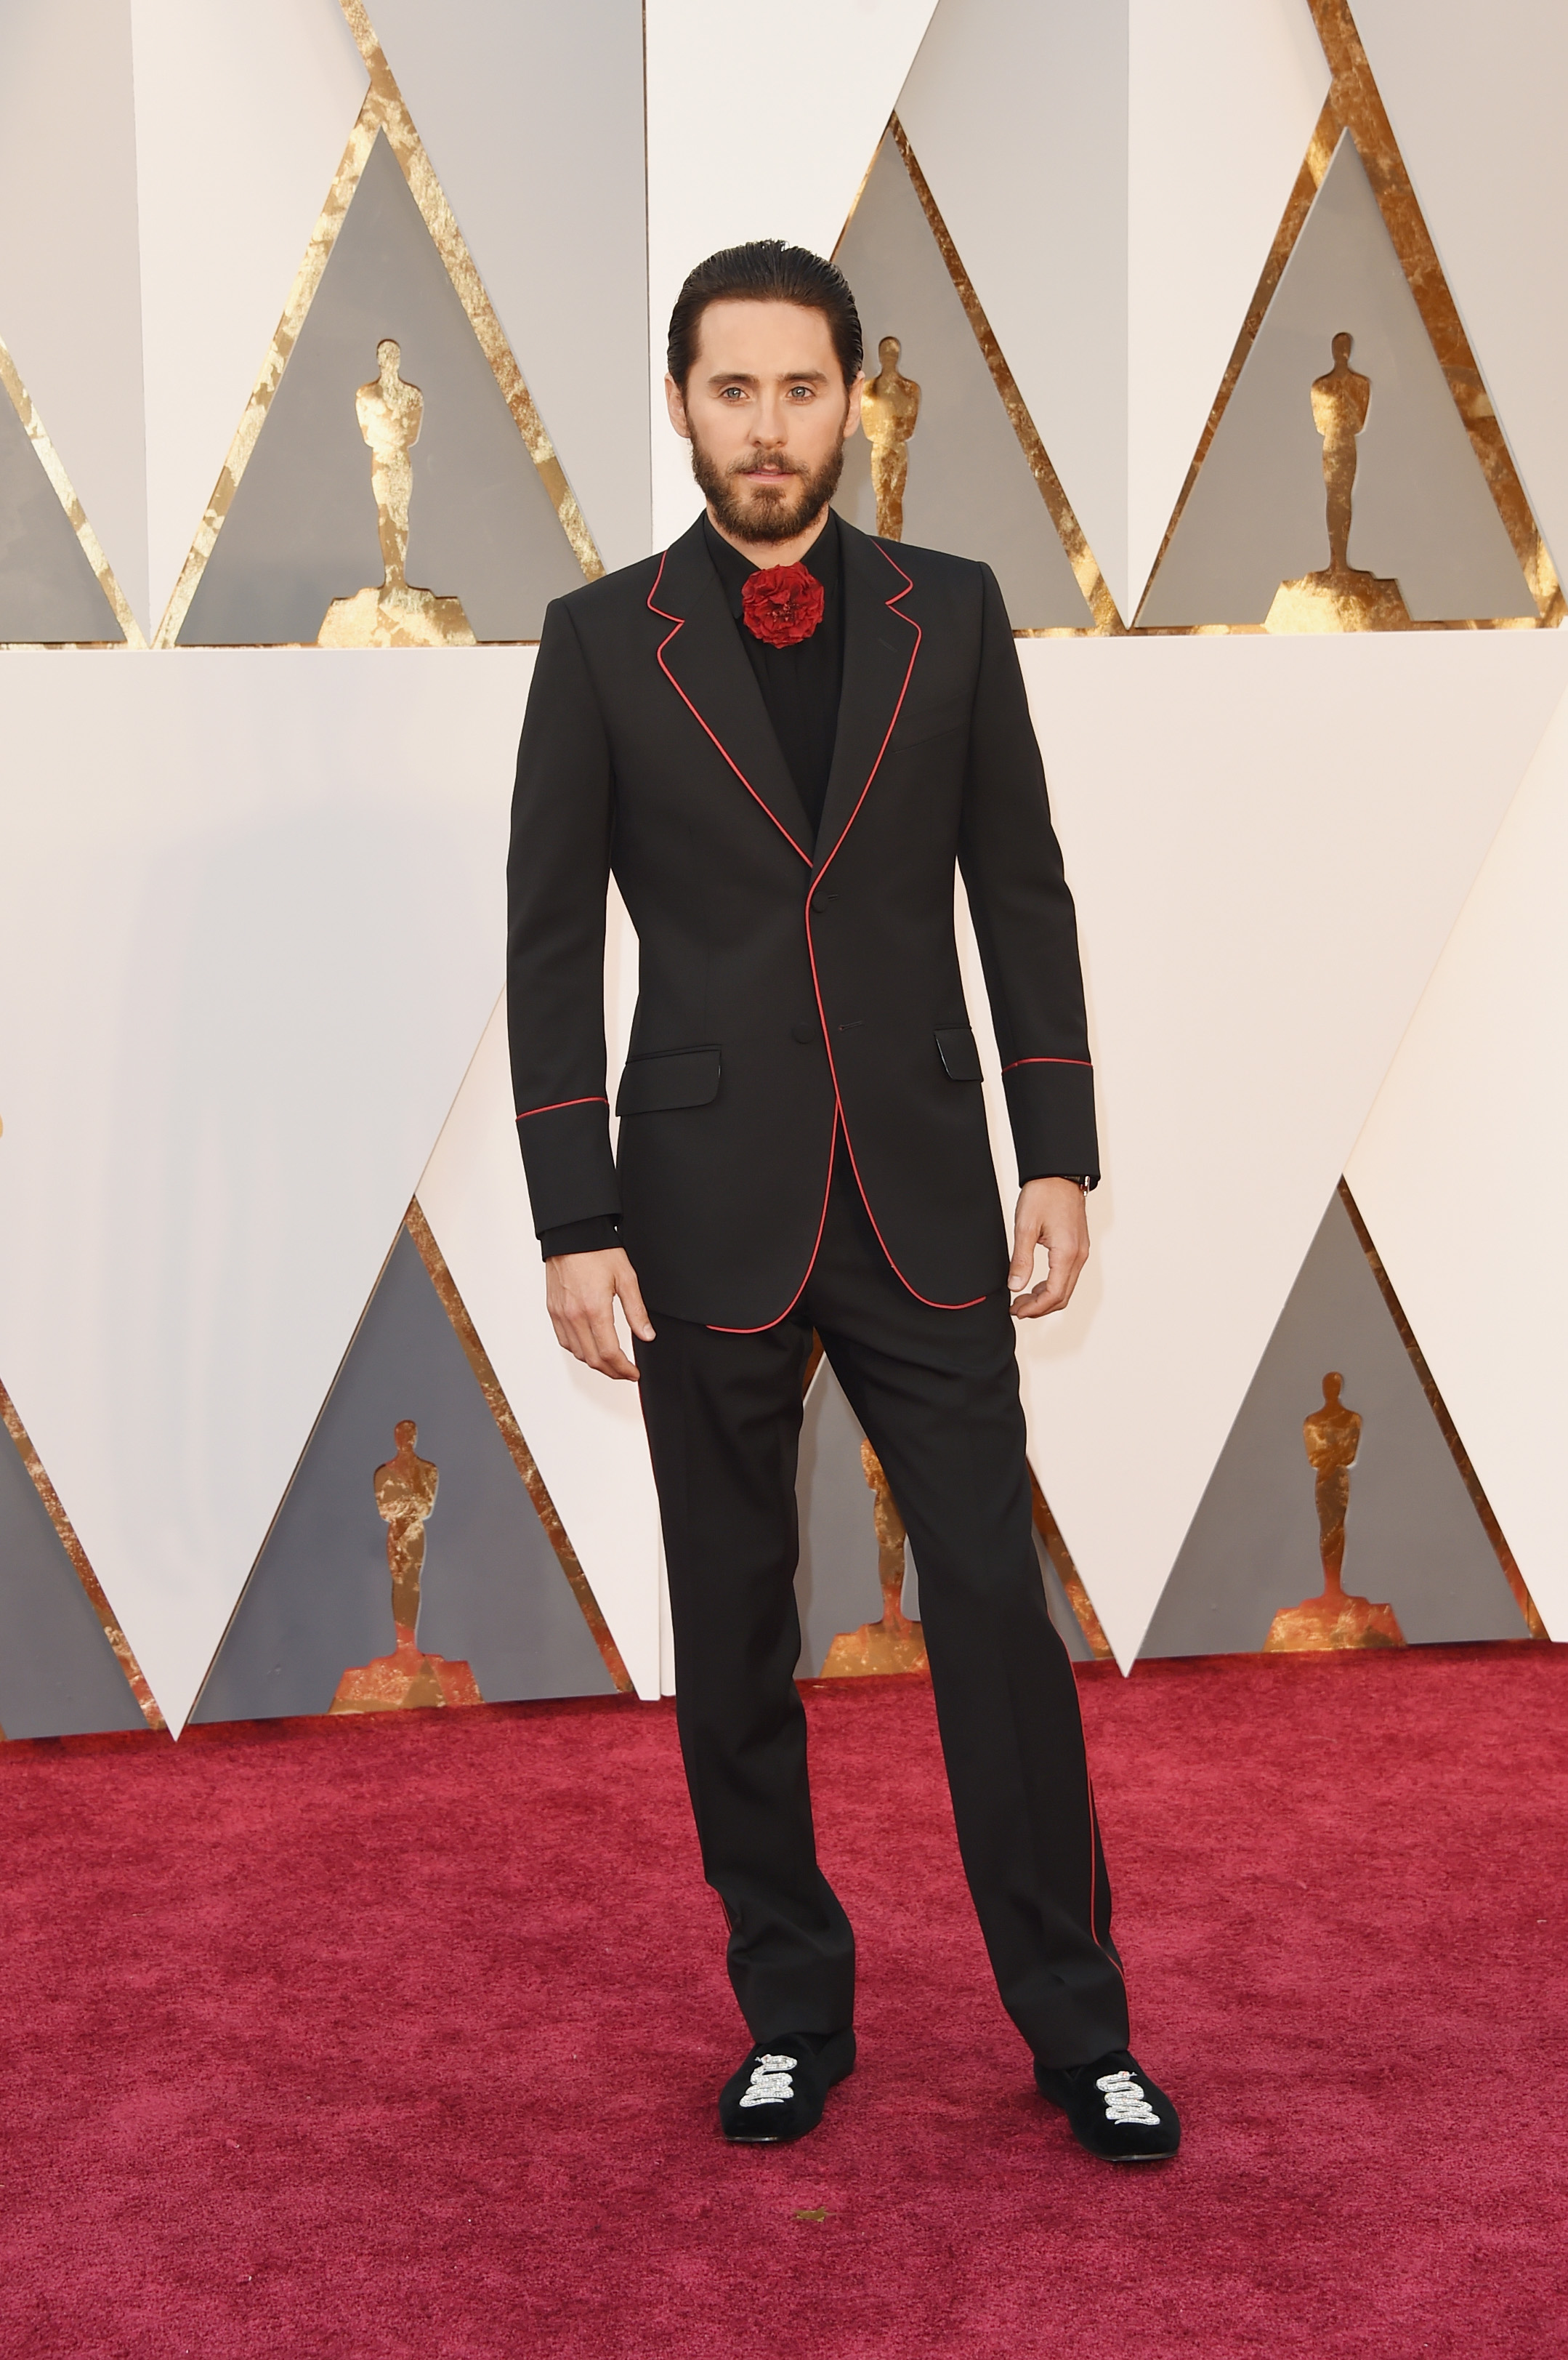 Jared Leto attends the 88th Annual Academy Awards on Feb. 28, 2016 in Hollywood, Calif.